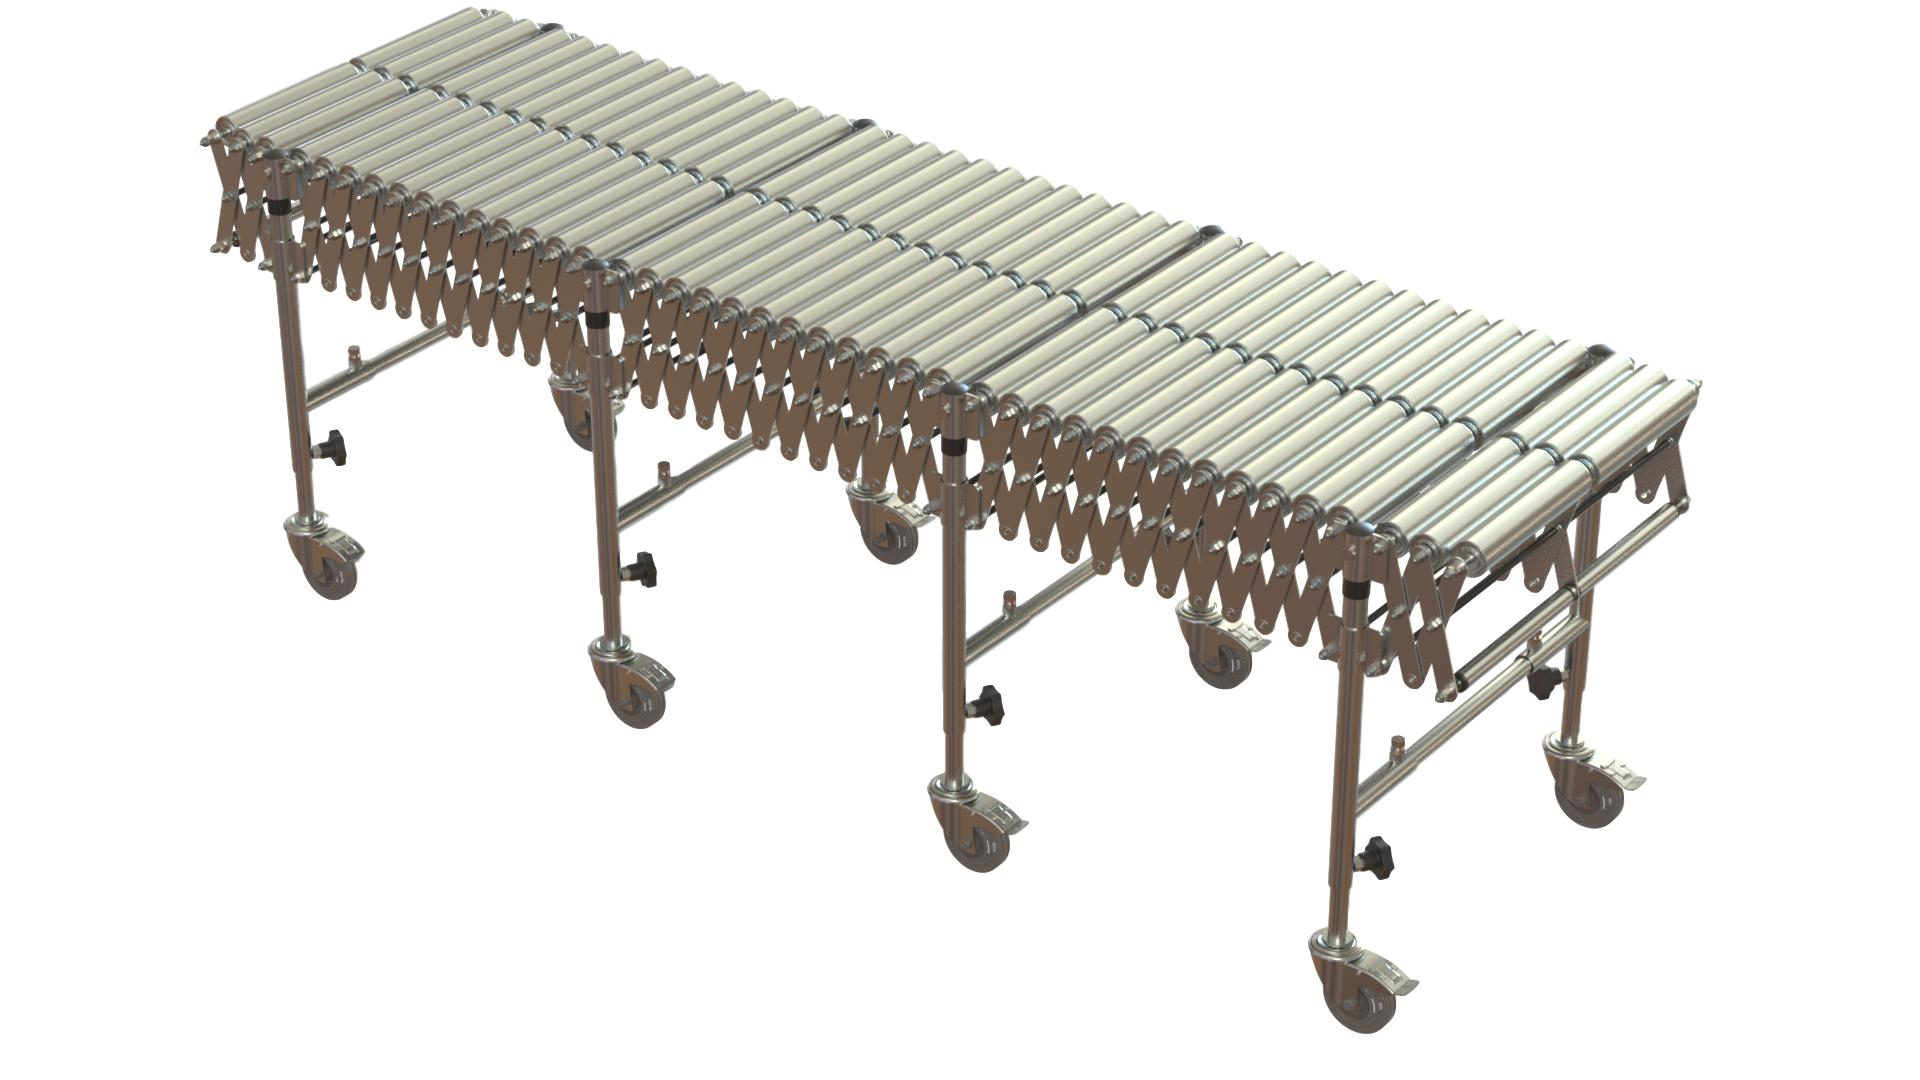 Expanding Roller Conveyors for sale UK